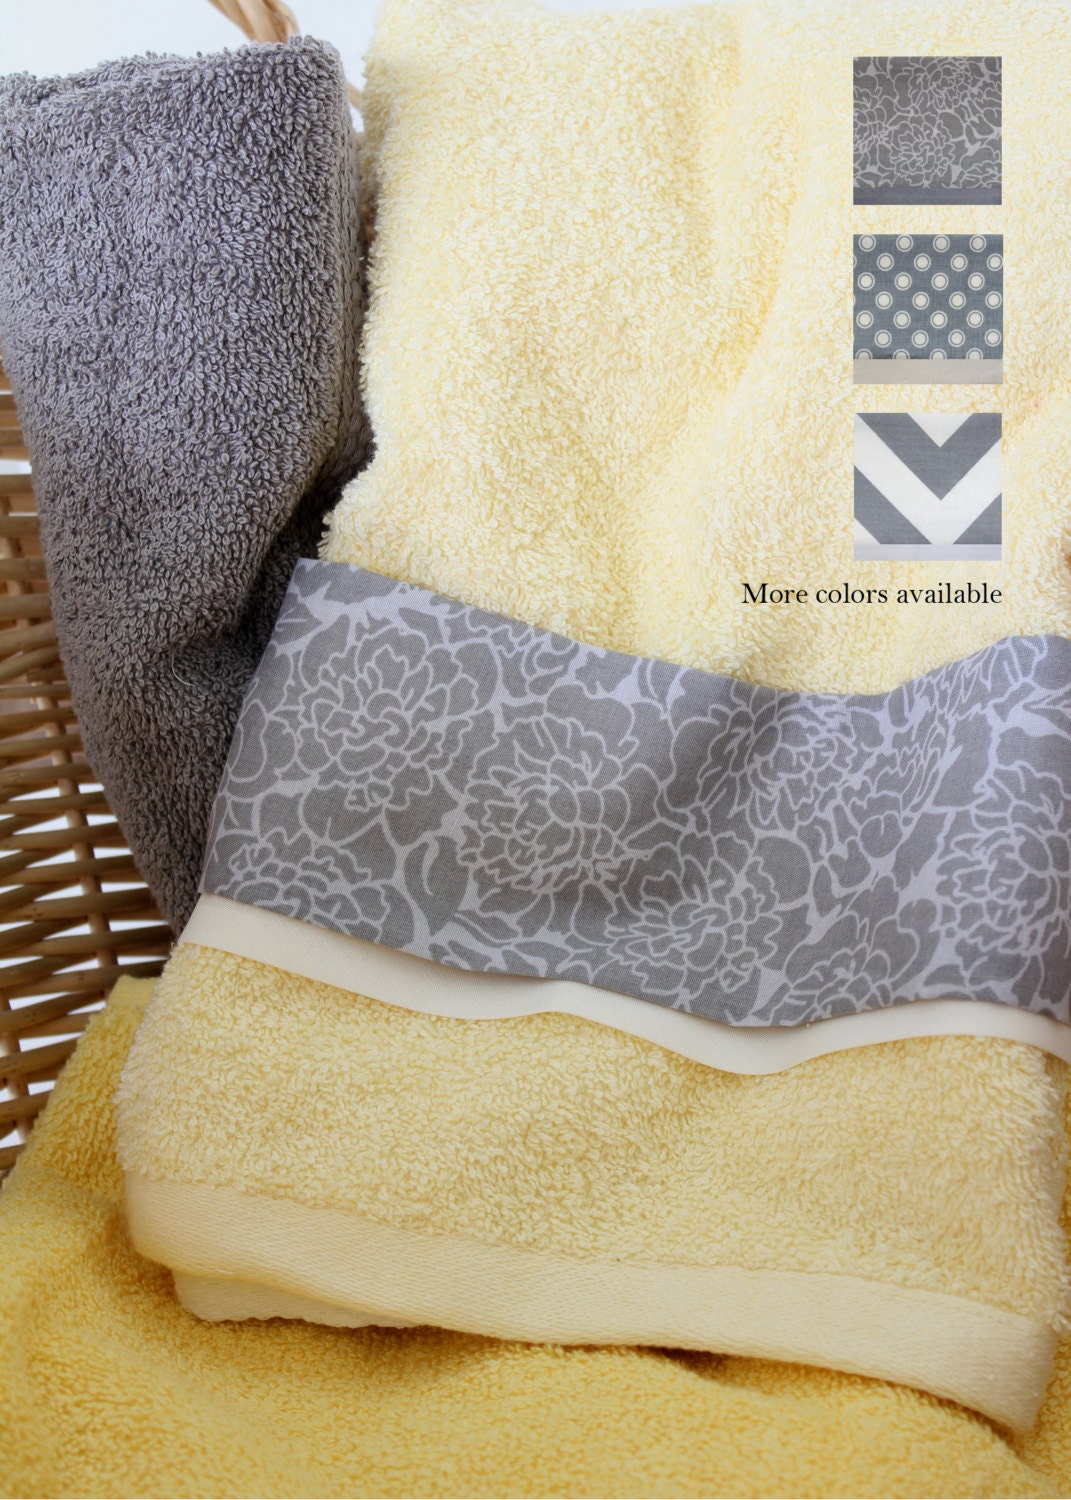 butter yellow gray bath hand towel you by southernspringco. Black Bedroom Furniture Sets. Home Design Ideas